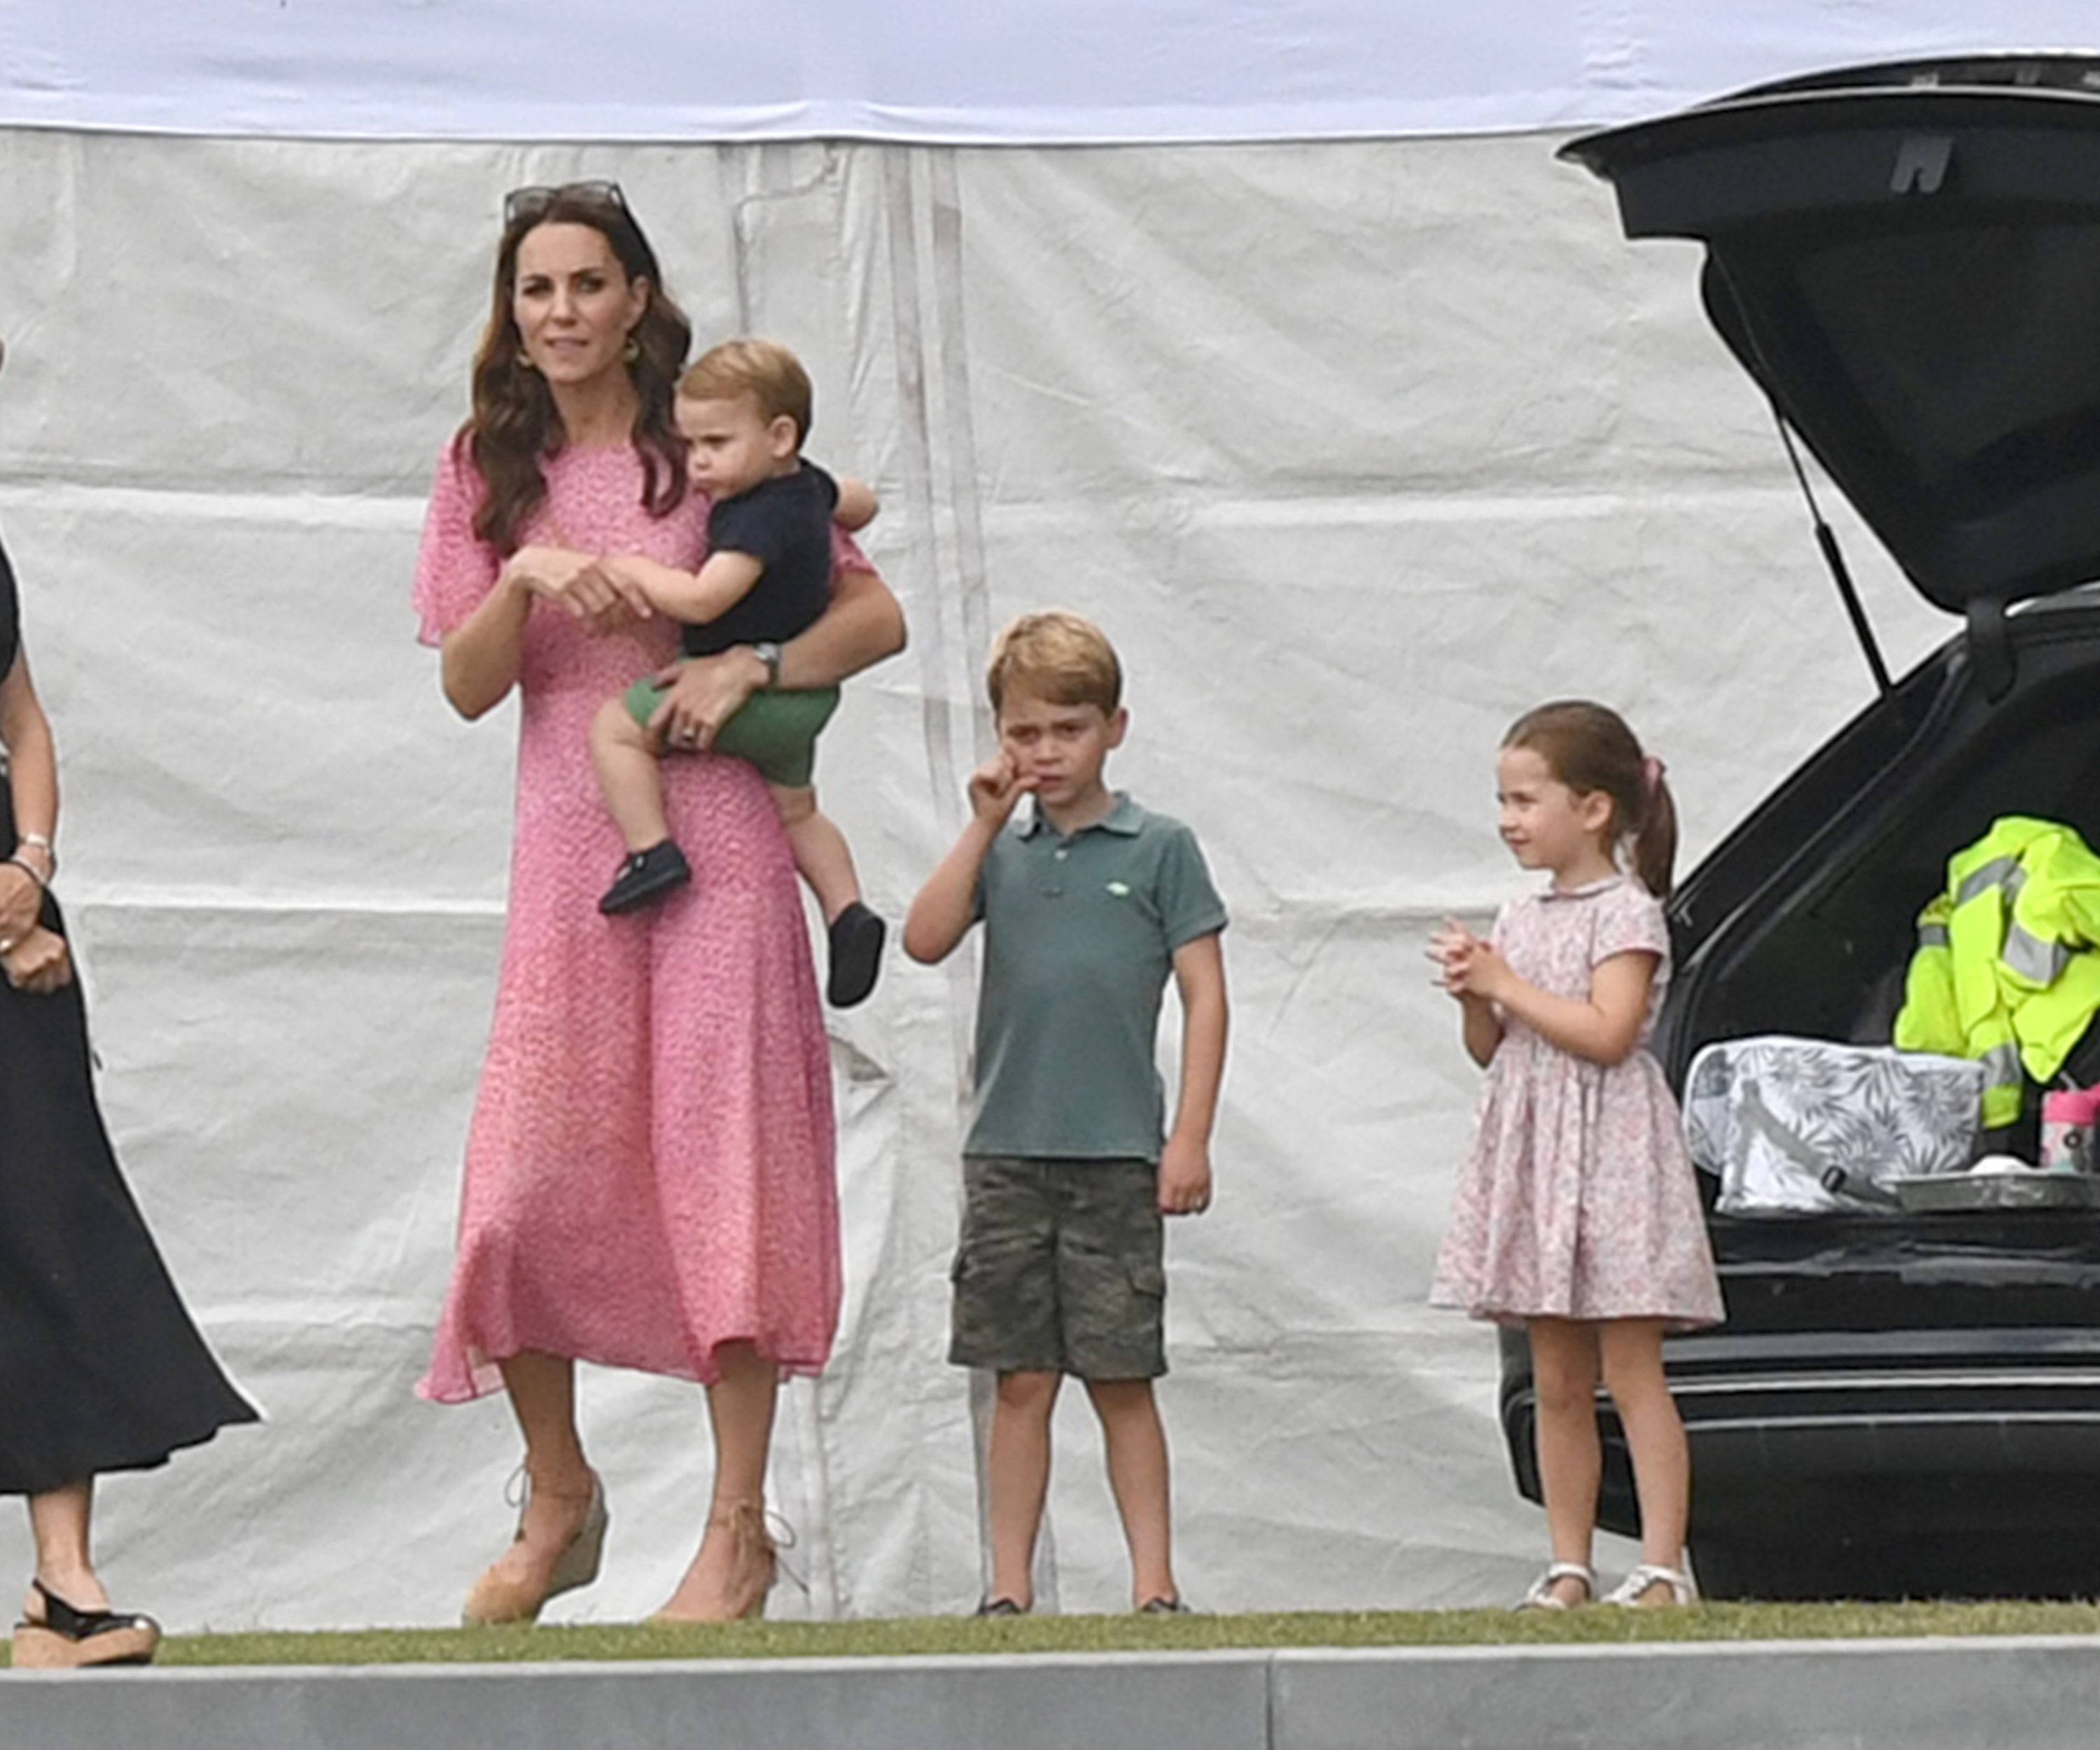 Kate Middleton will not attend awards 'due to the children'